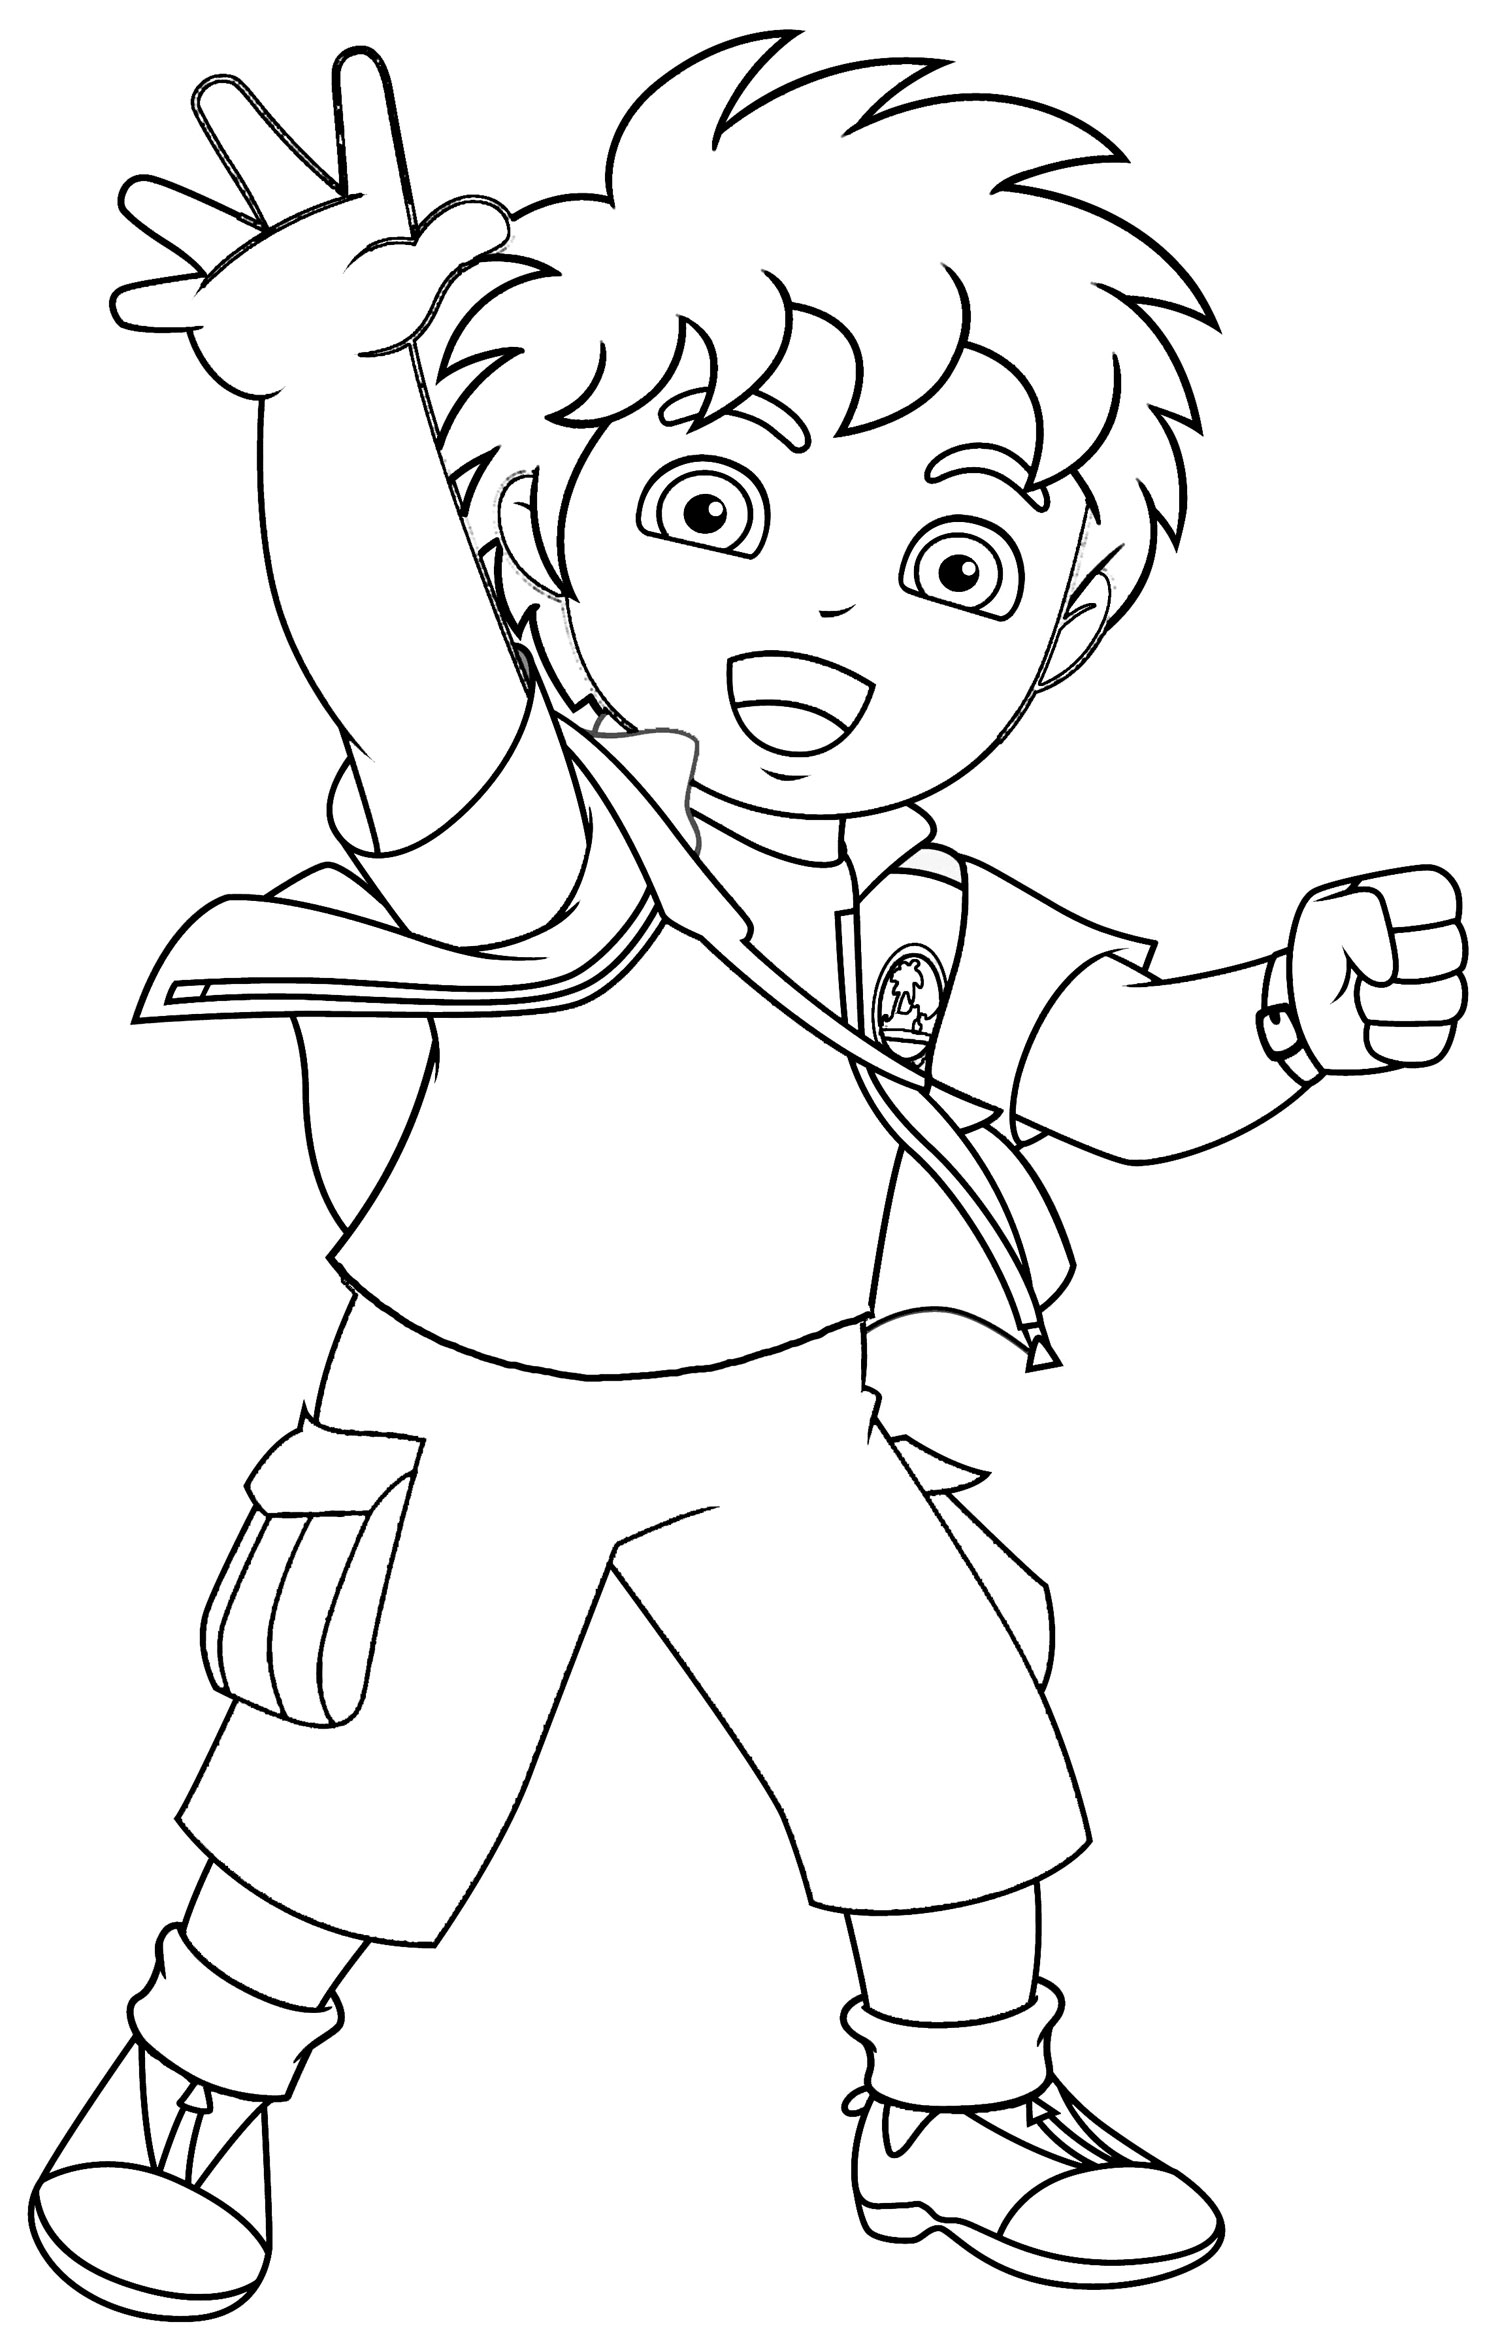 Free Printable Diego Coloring Pages For Kids Free Coloring Pages For To Print